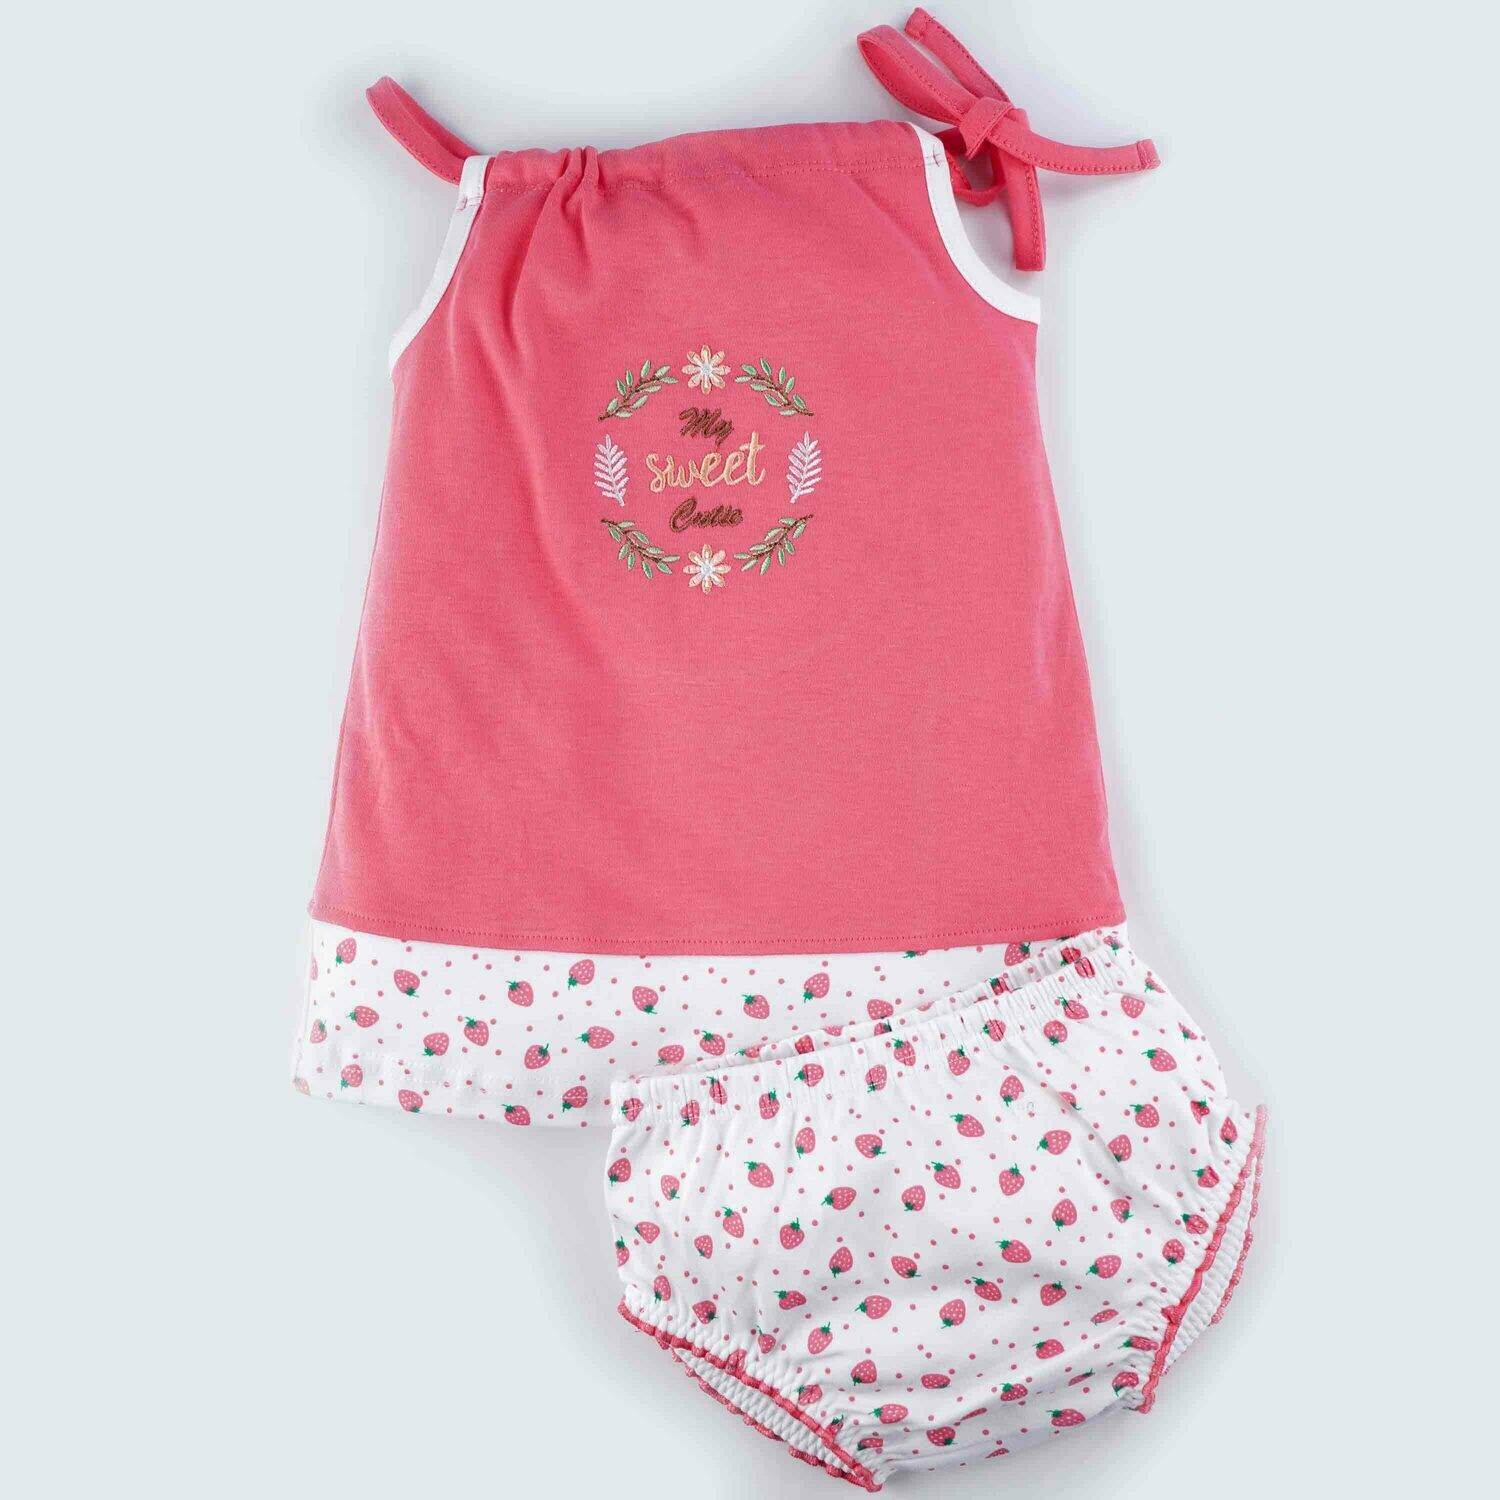 Blume Coral Shoulder Knot Sleeveless Strawberry Design Cotton Top With Bloomer for Baby Girls L (12-18 Months)